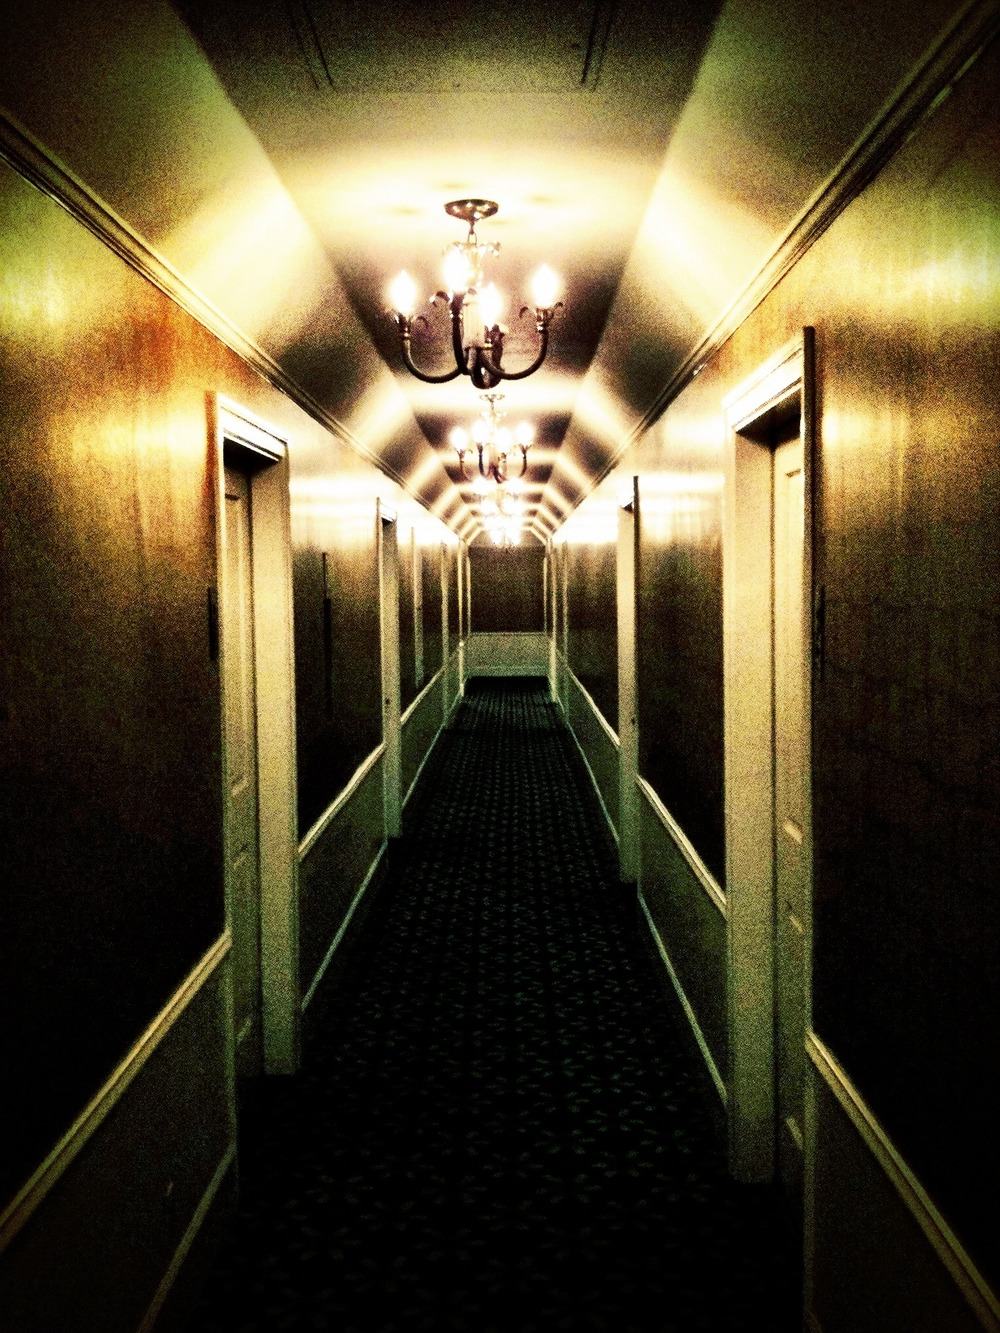 The hallways in this hotel remind me of The Shining. Red Rum...